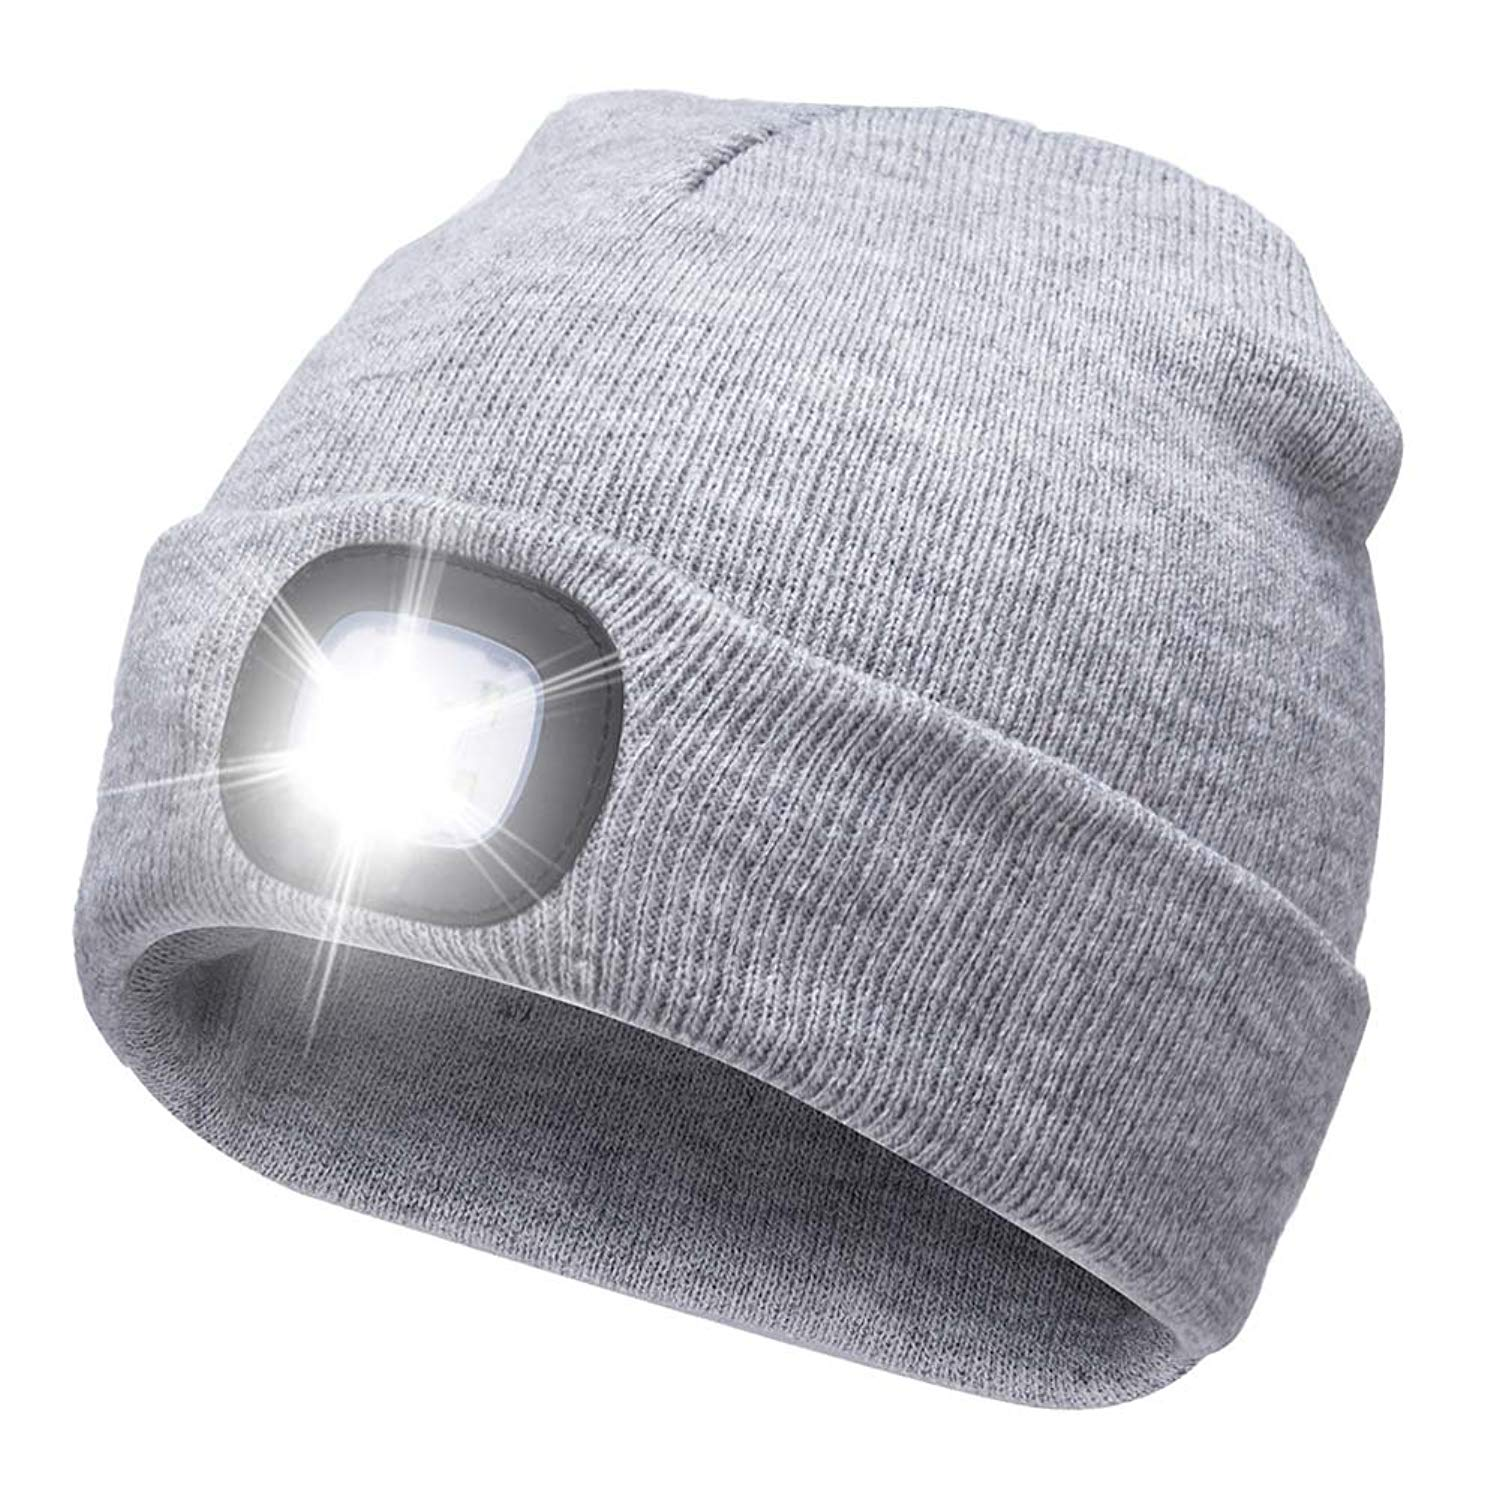 b52022a8 Get Quotations · Ultra Bright LED Unisex Lighted Beanie Cap/Winter Warm hat  (USB charging)